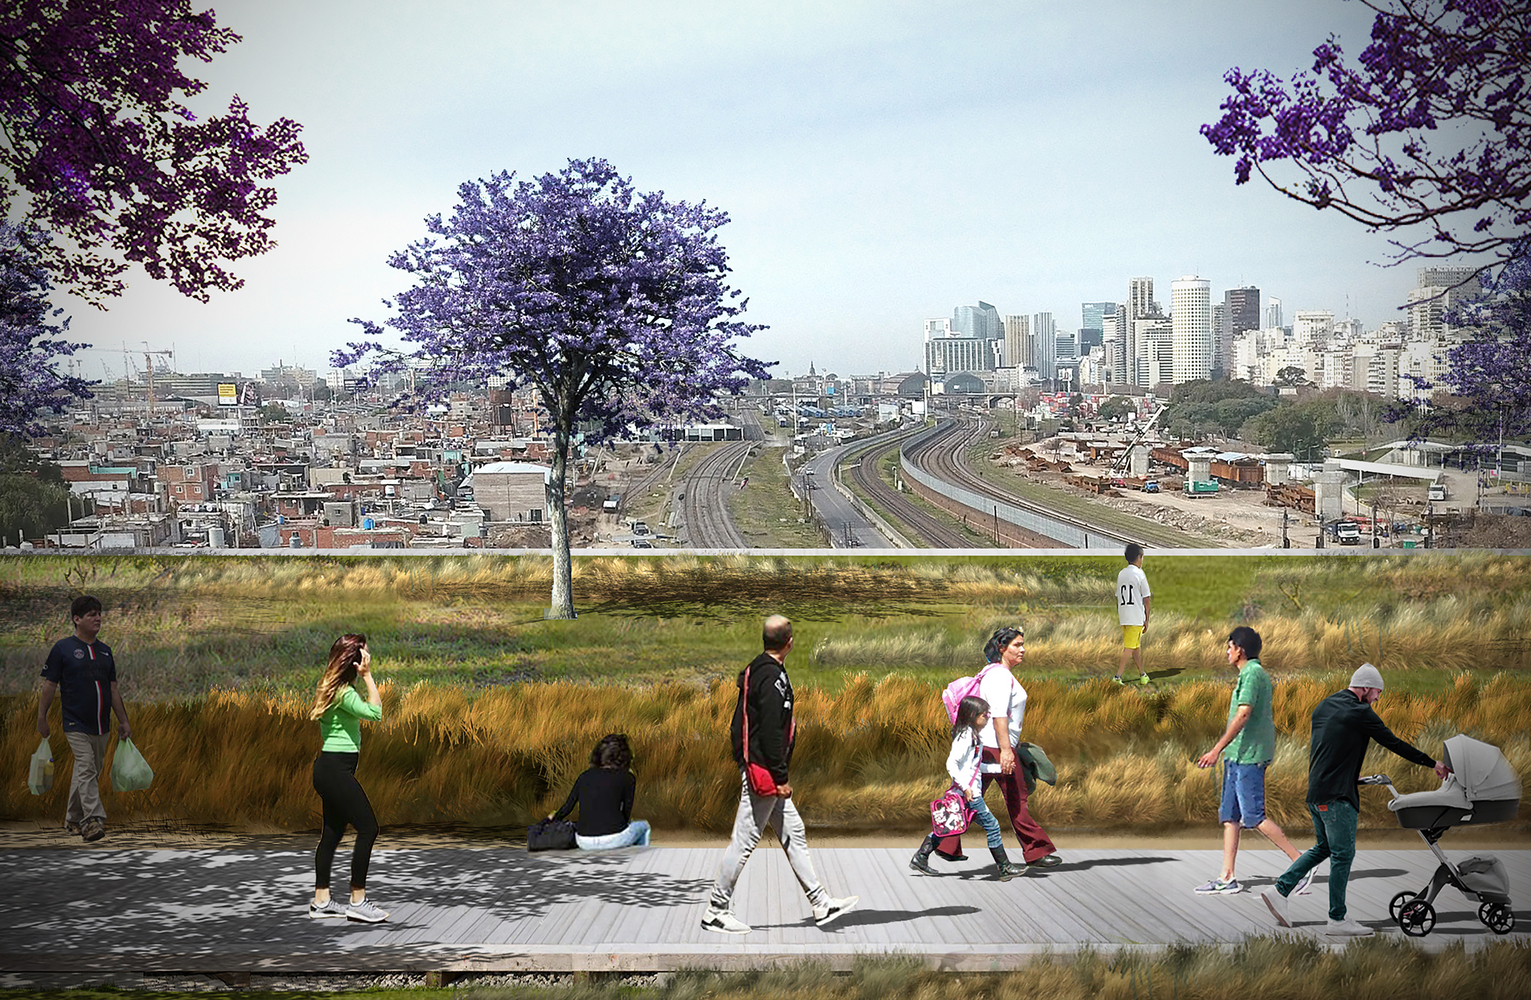 Elemental's new garden bridge building proposal for Buenos Aires. Images courtesy of Elemental